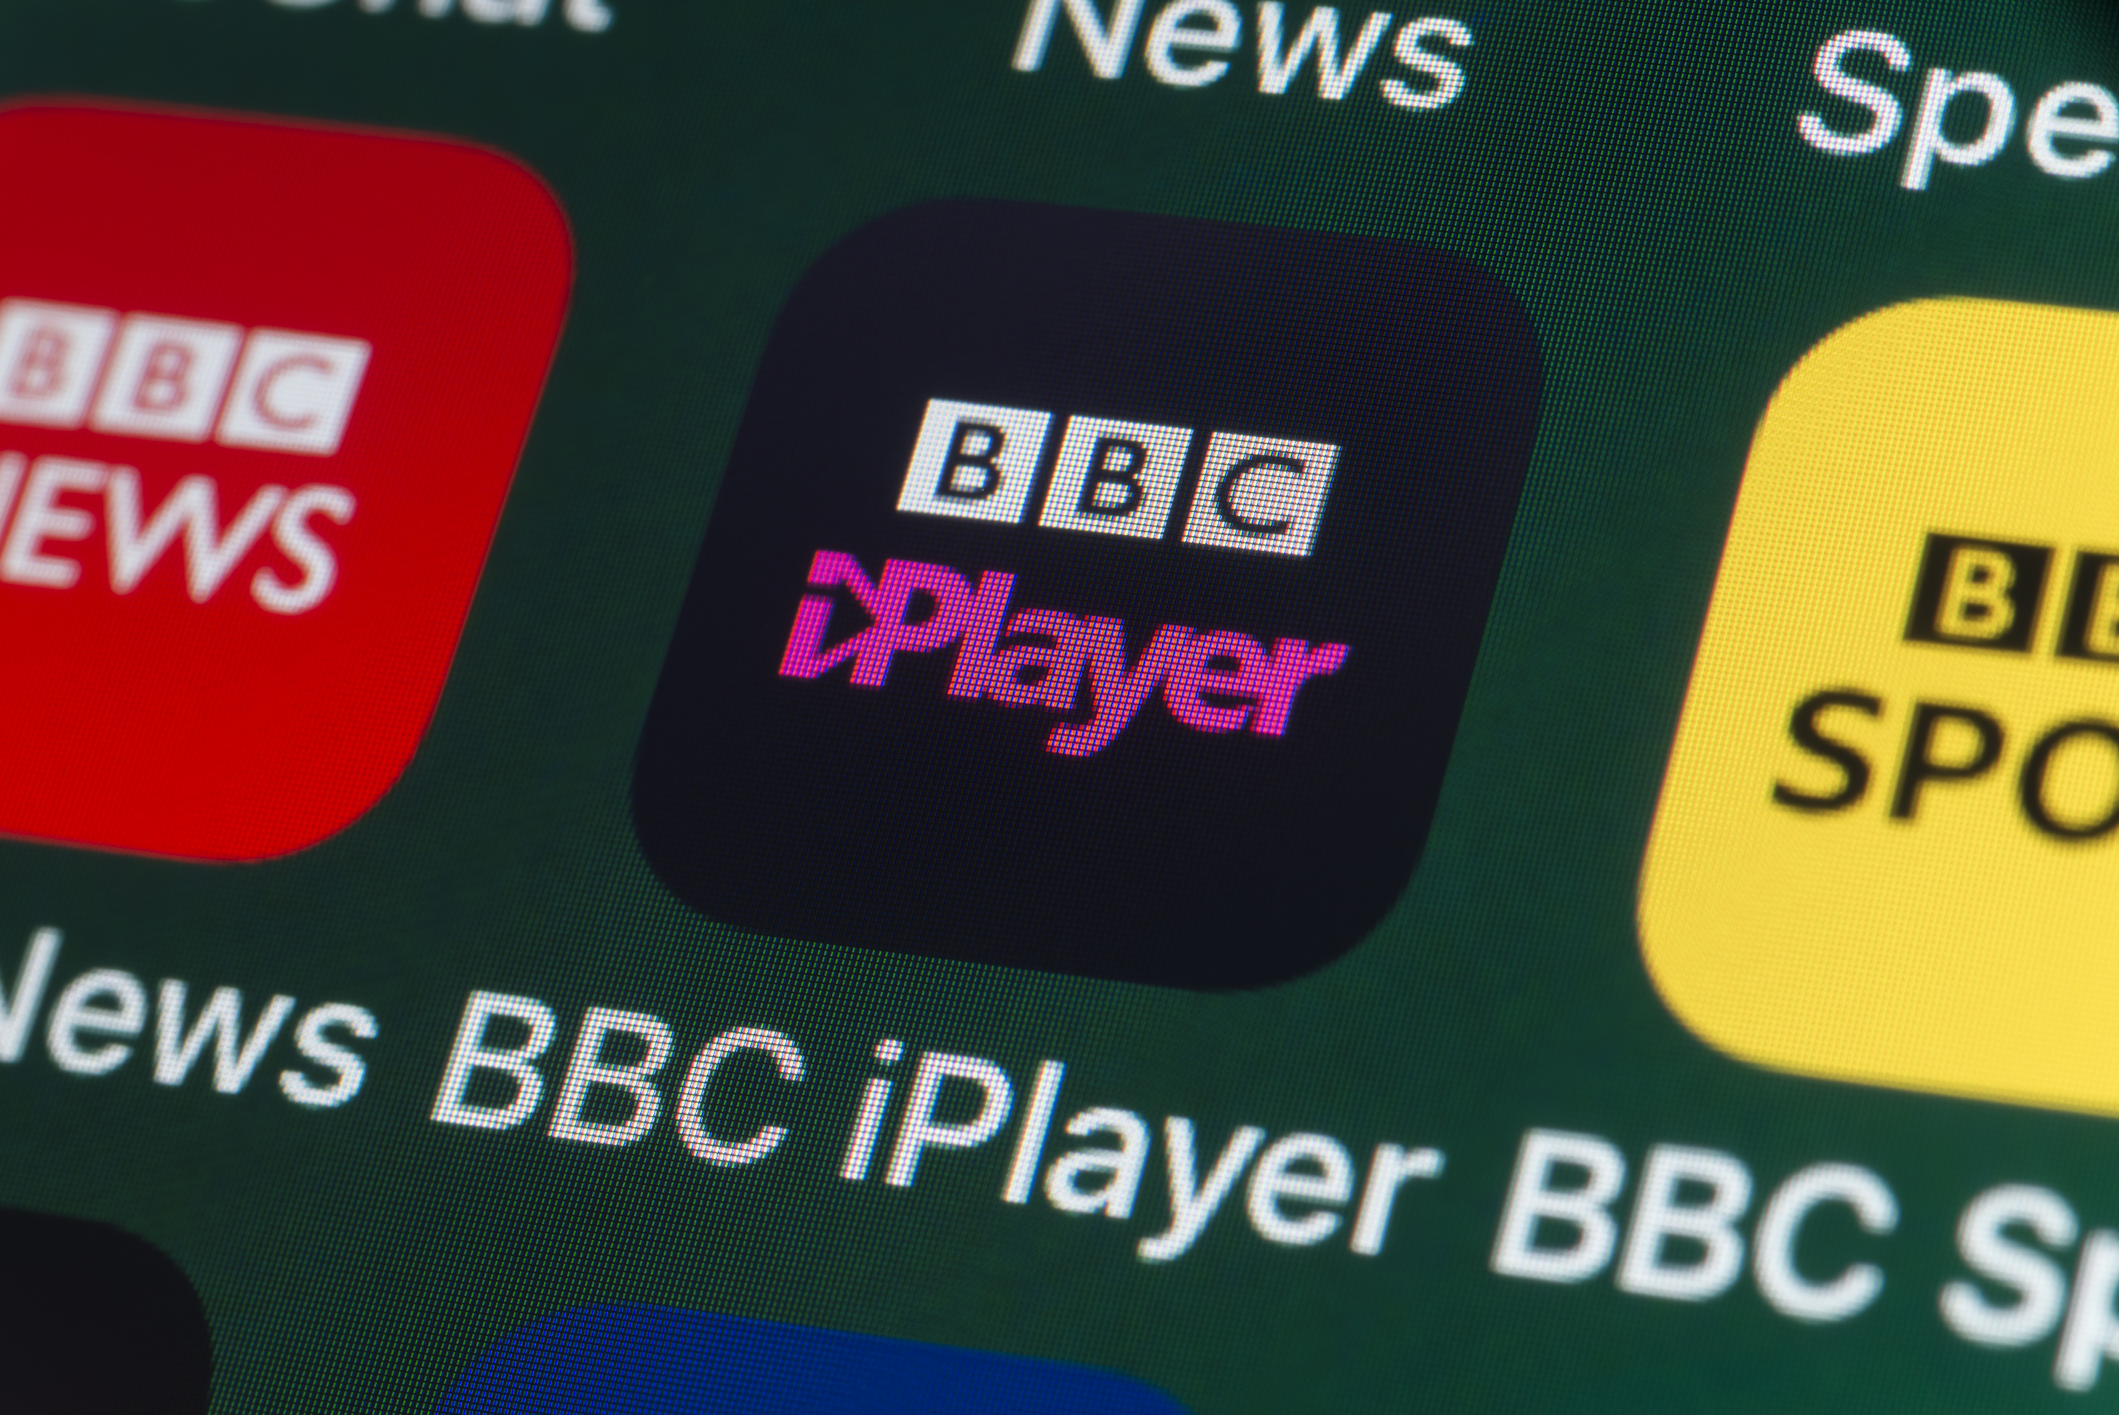 The buttons of the BBC iPlayer app, surrounded by BBC News, BBC Sport, News and other apps on the screen of an iPhone